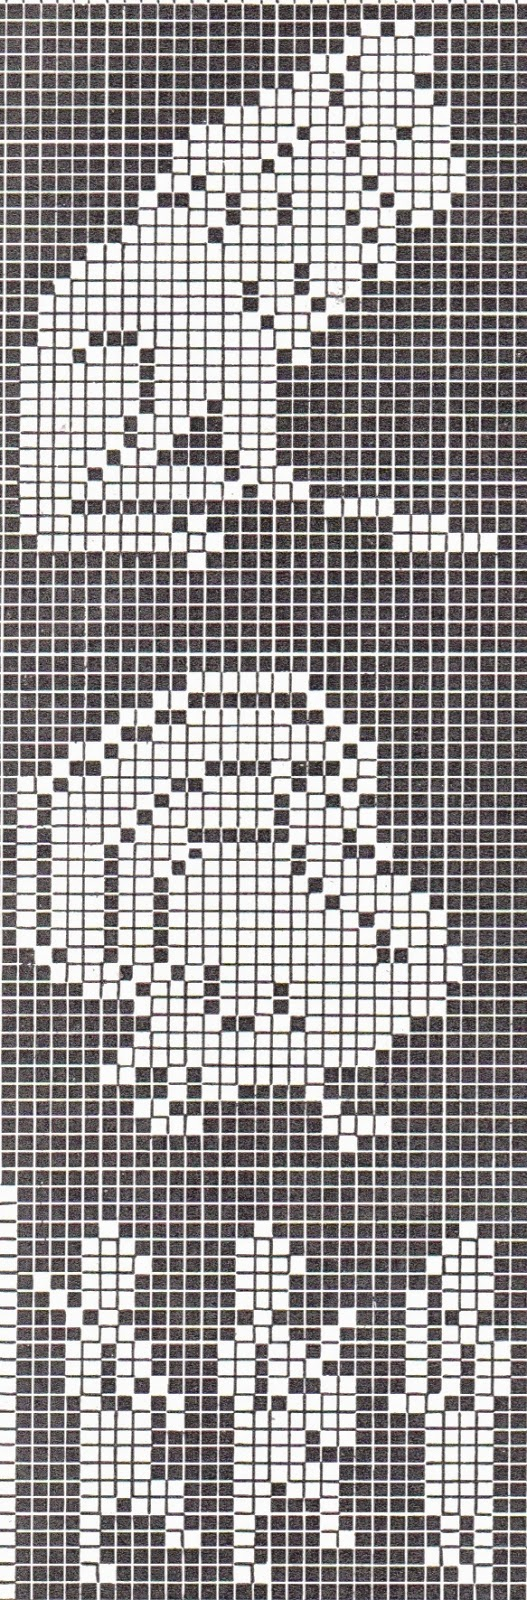 Super cute and FREE cross stitch or filet crochet patterns ...